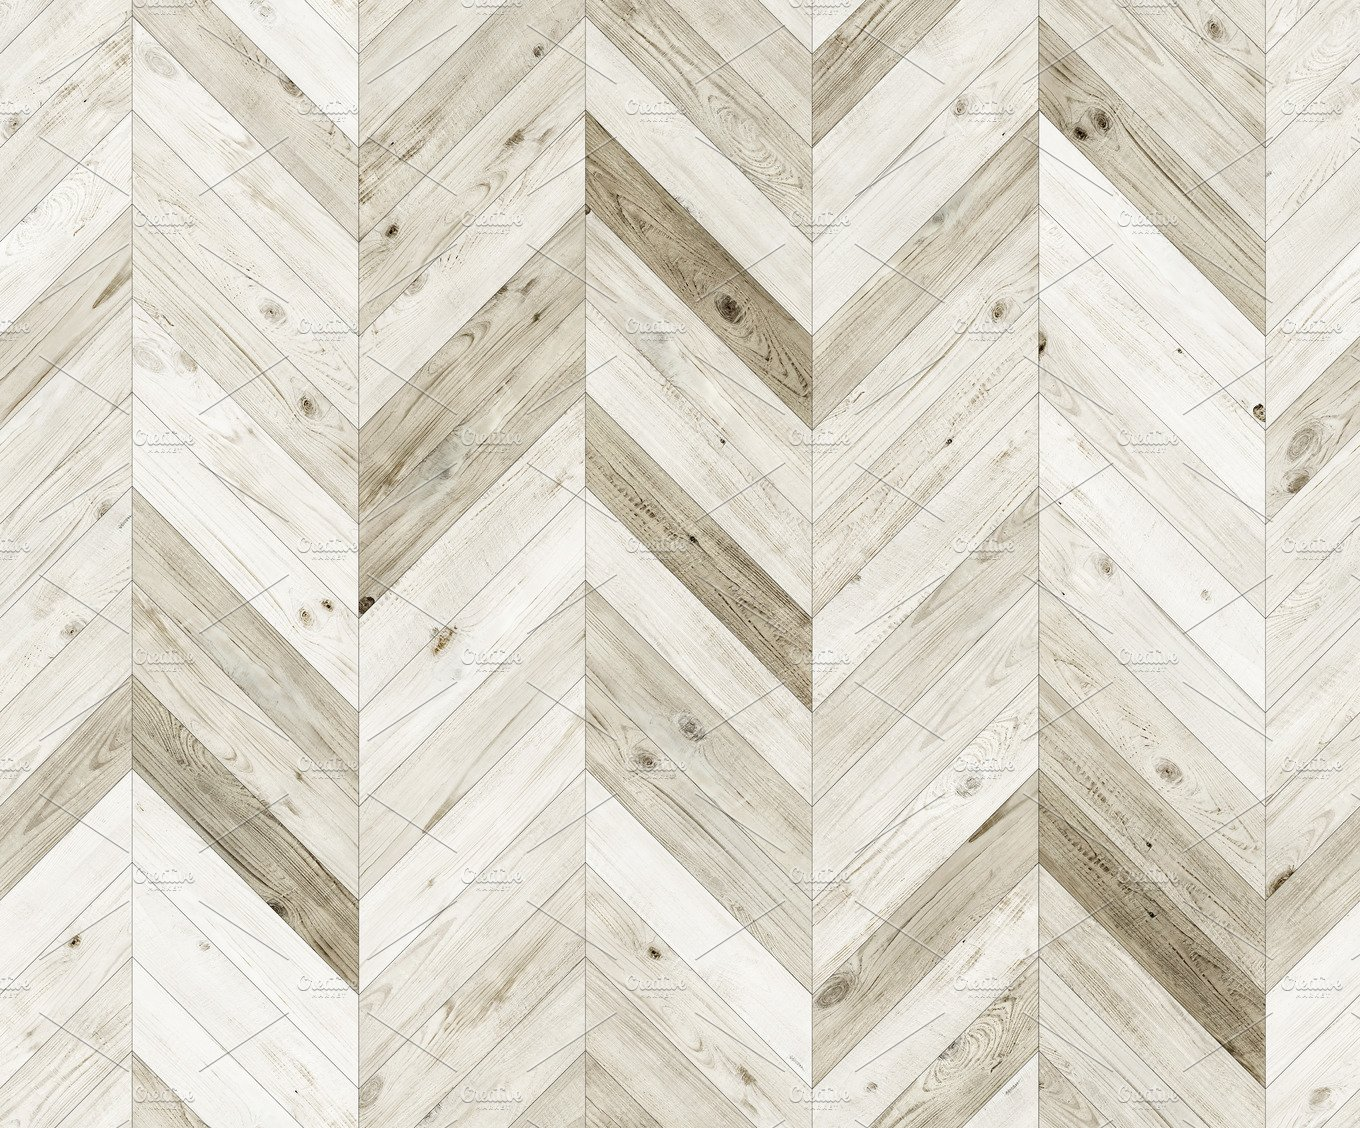 chevron bleached natural parquet seamless floor texture abstract photos creative market. Black Bedroom Furniture Sets. Home Design Ideas